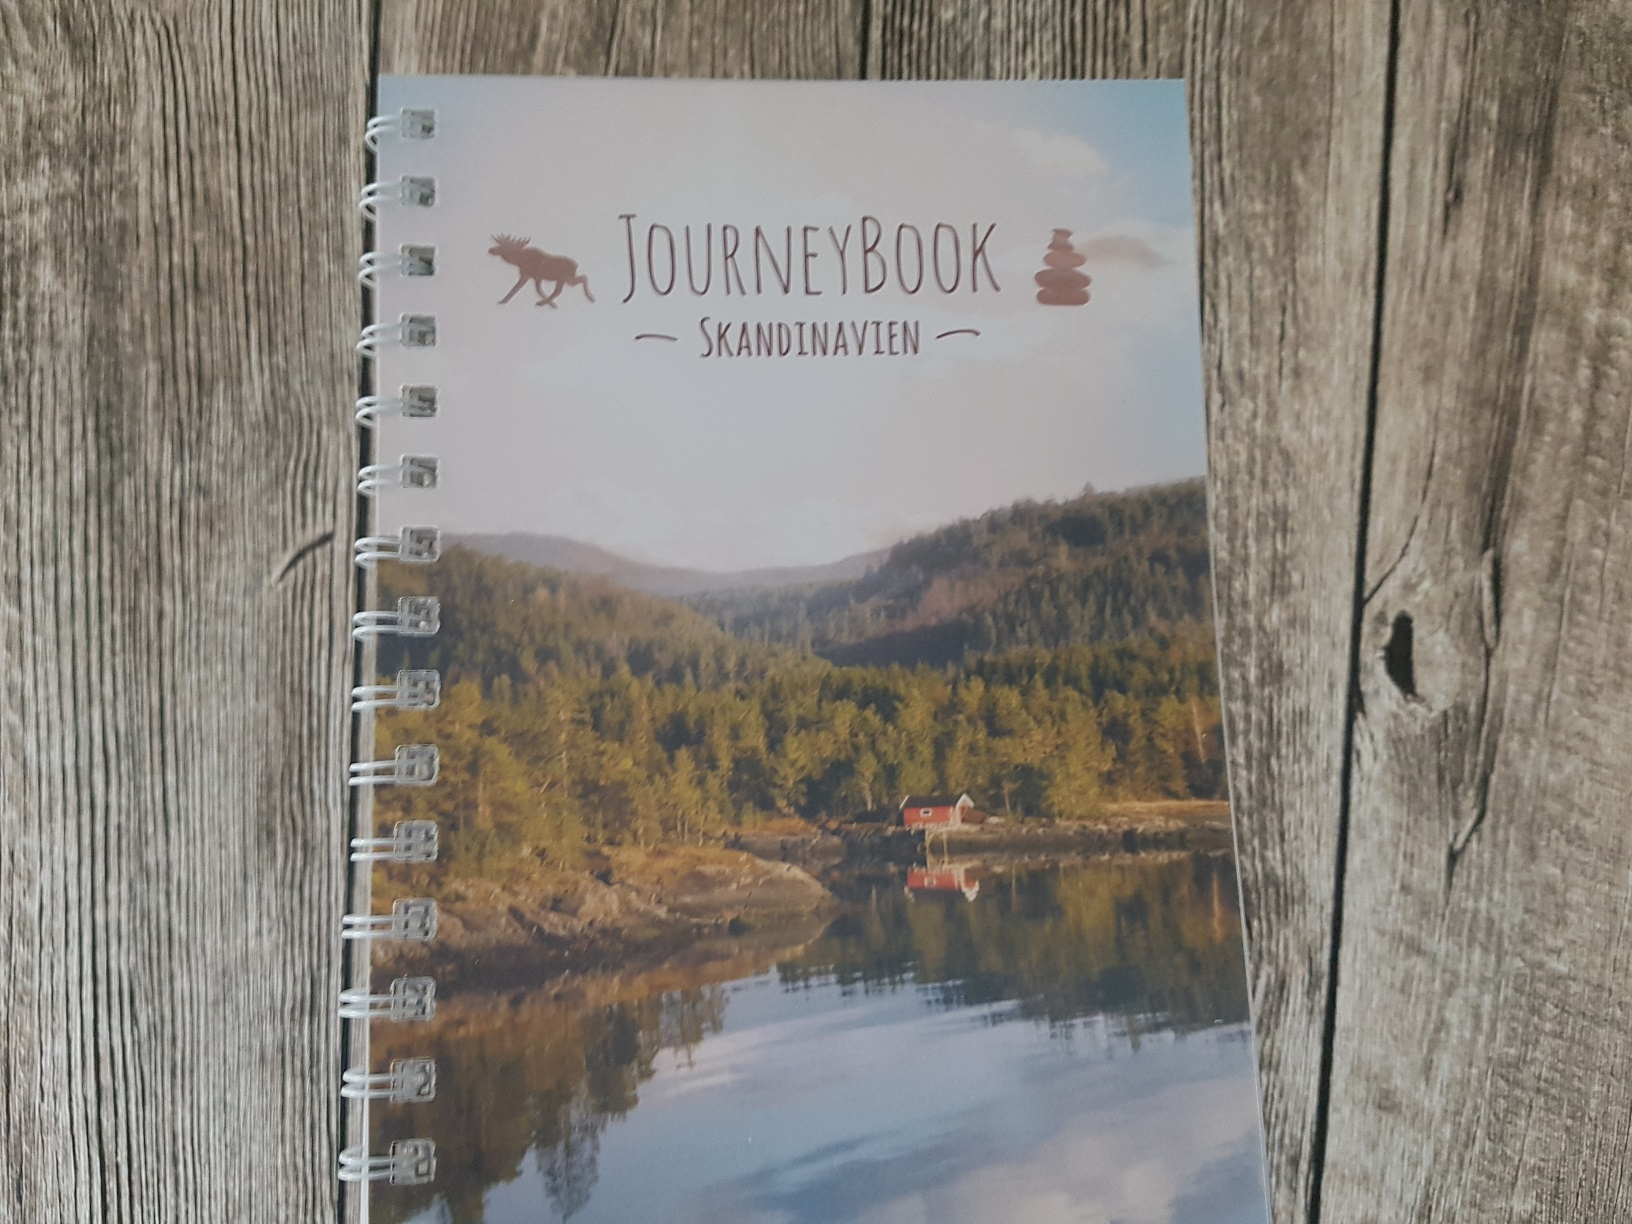 Das Cover des JourneyBook Skandinavien